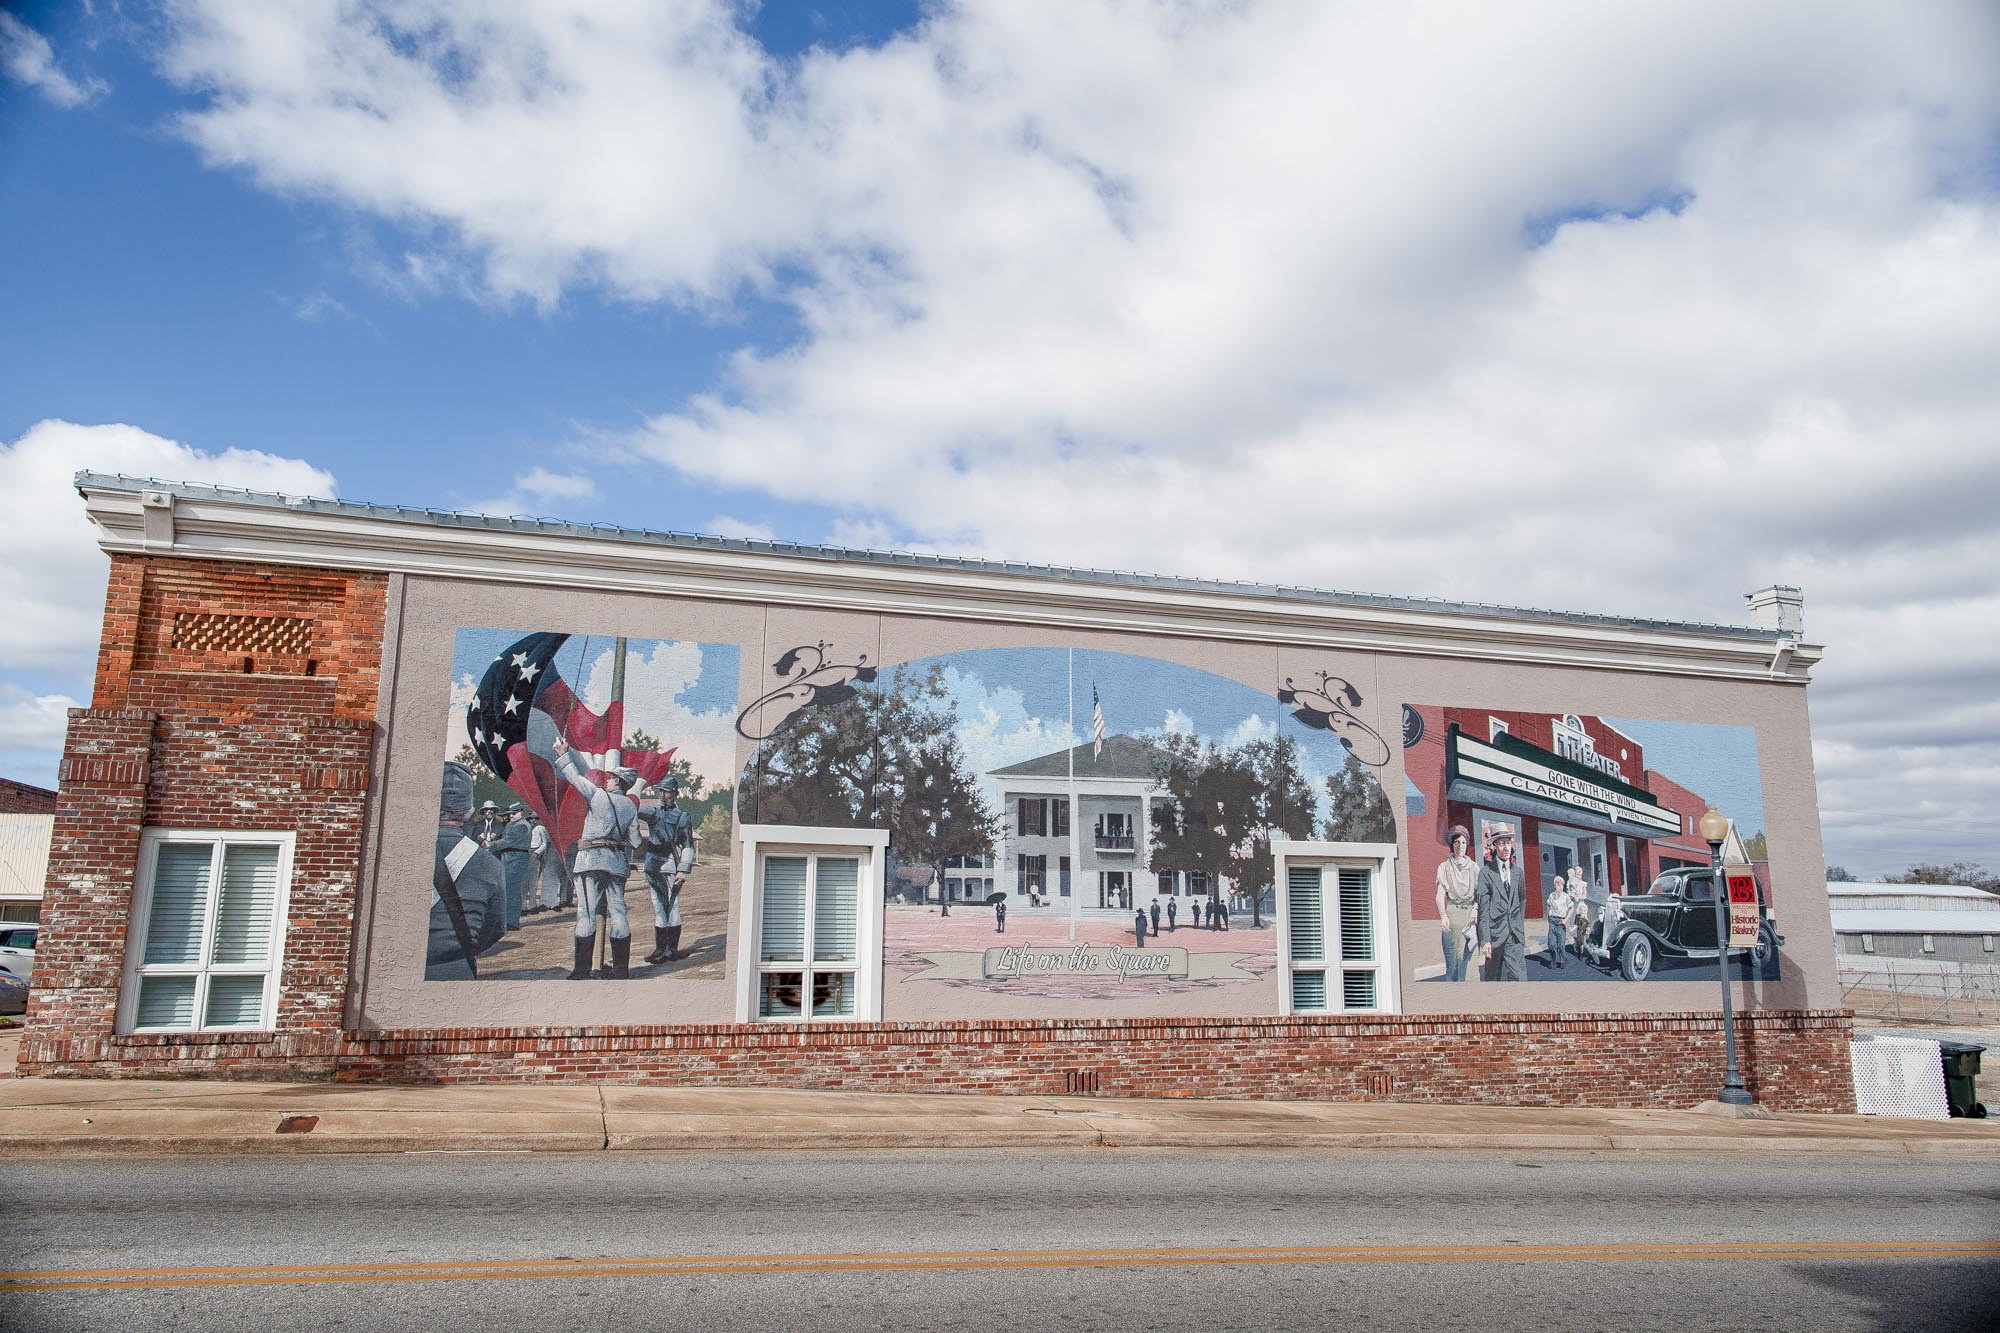 Muralist, Wes Hardin depicts days gone by on the Courthouse Square on the right corner as you approach from the north side of the square.